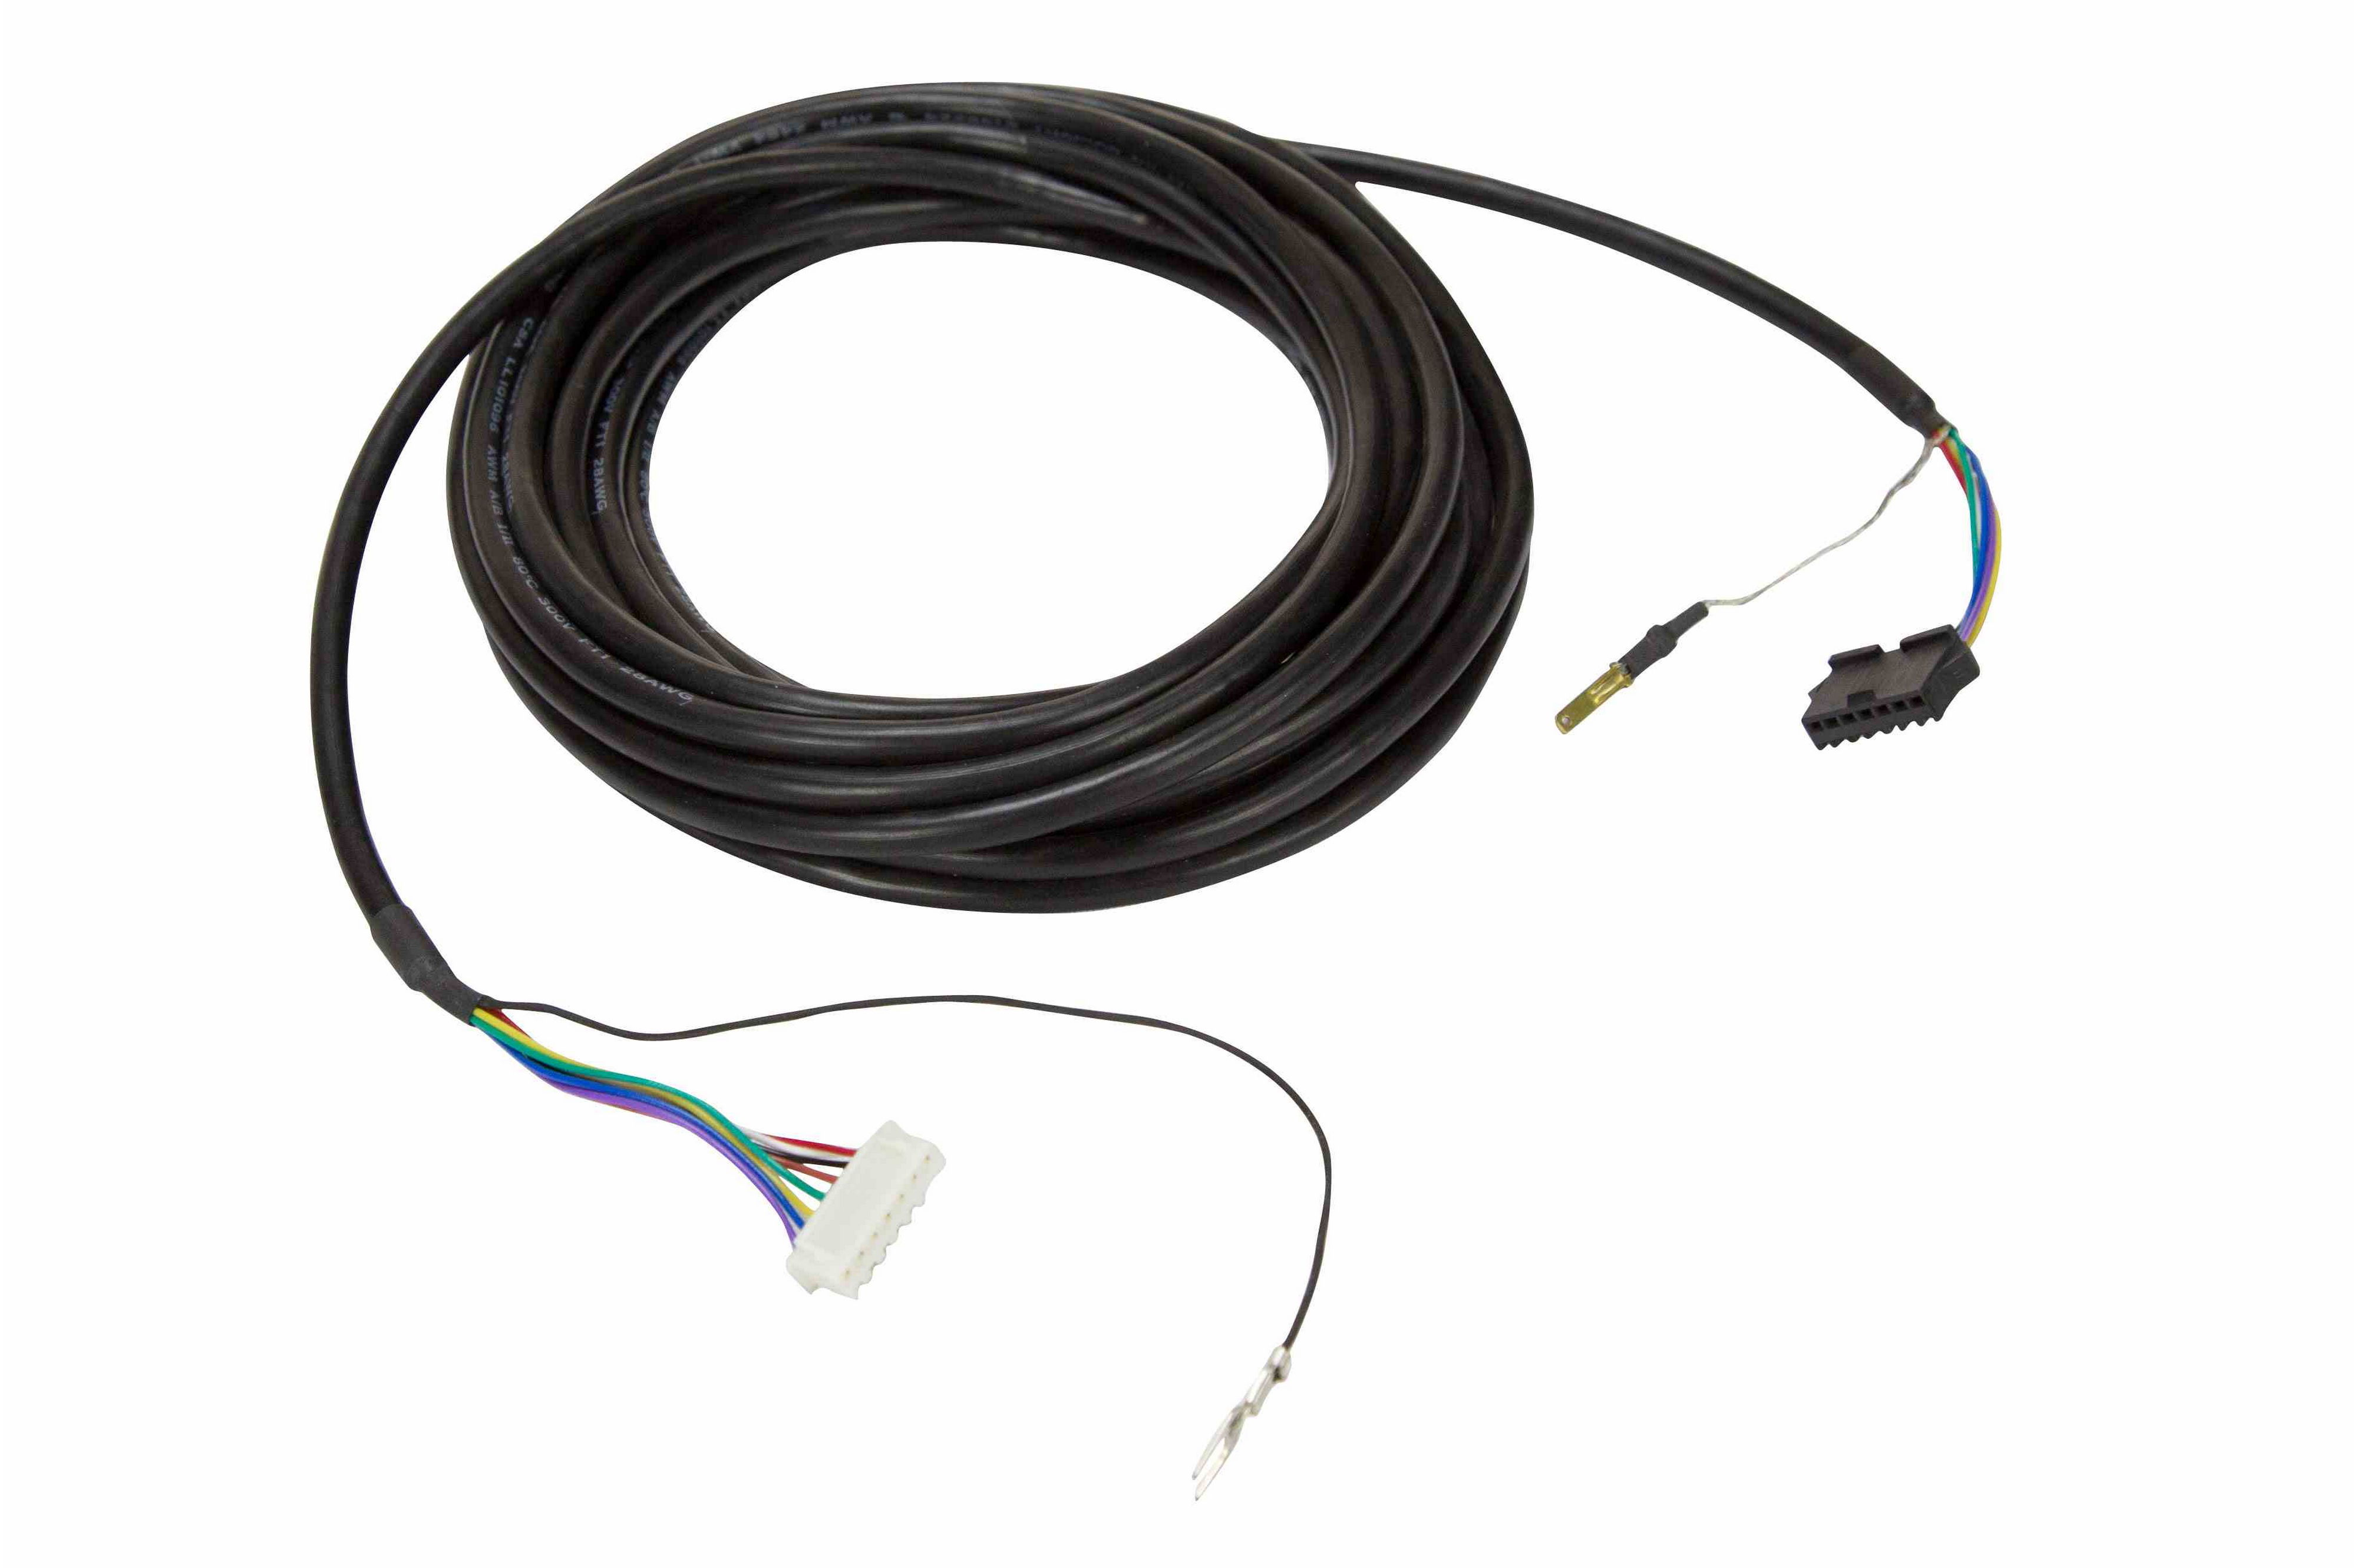 Gl 20 Replacement Cord